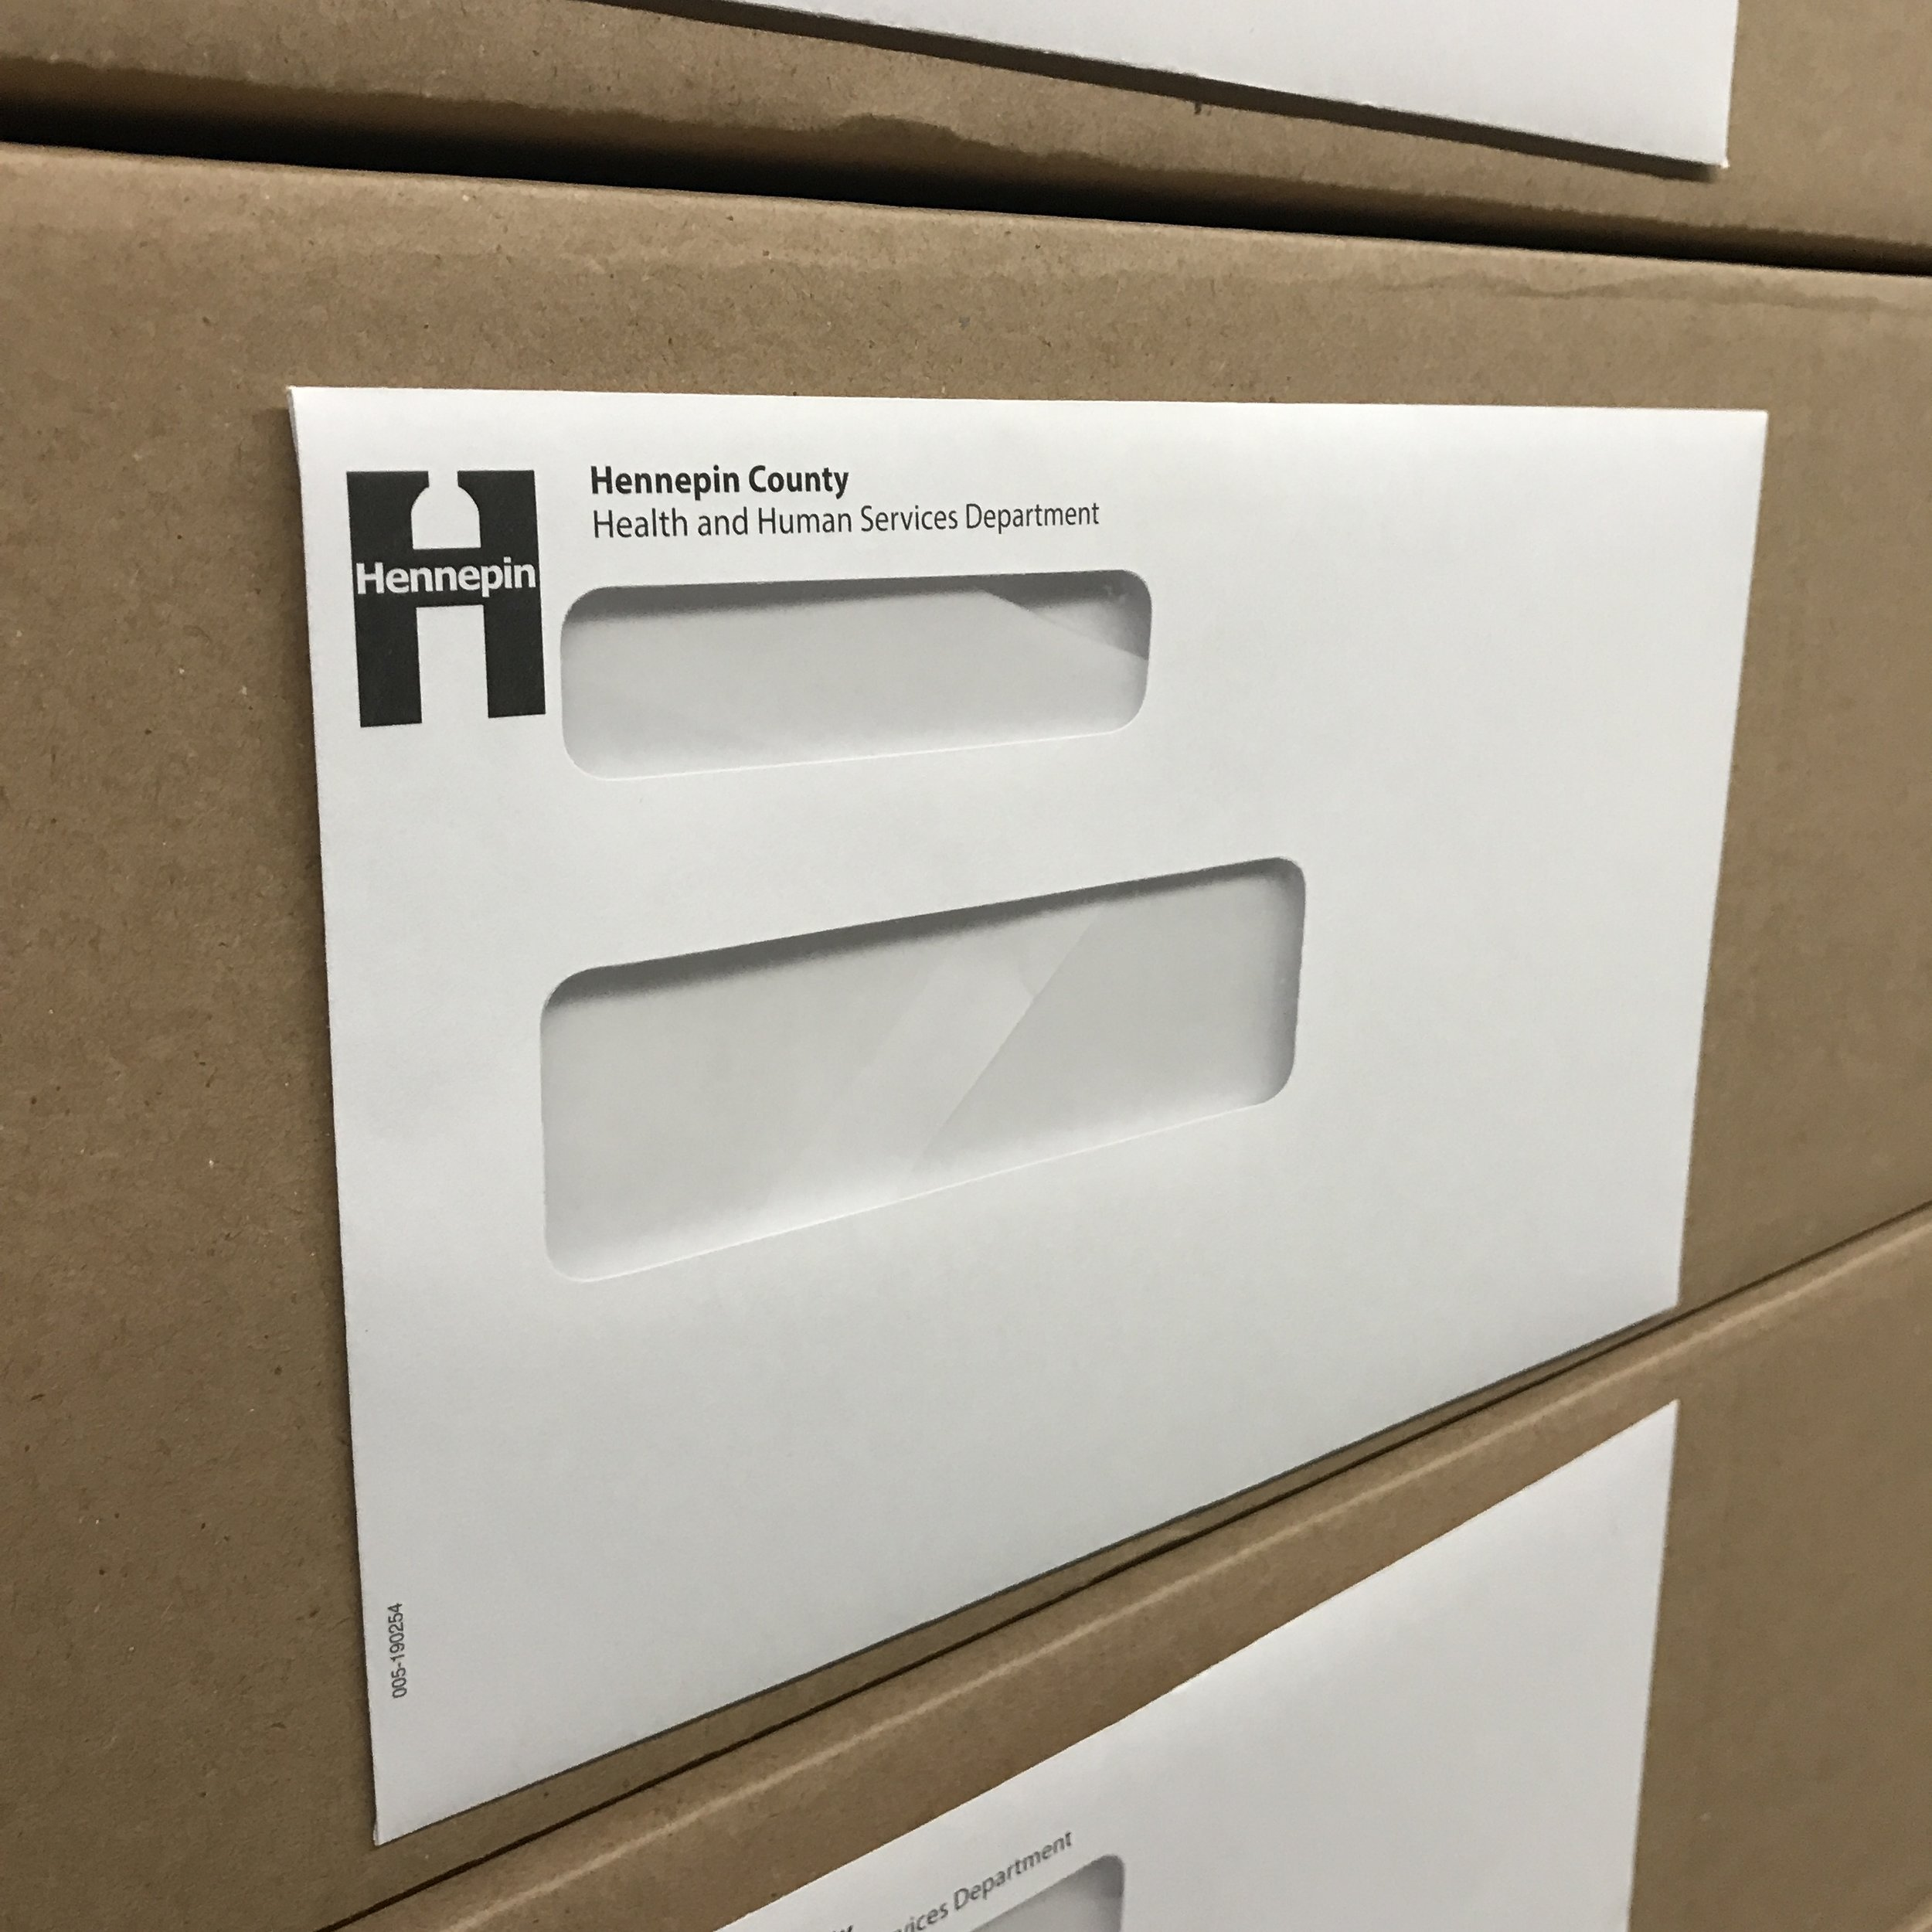 Local government envelopes printed and converted in Minnesota